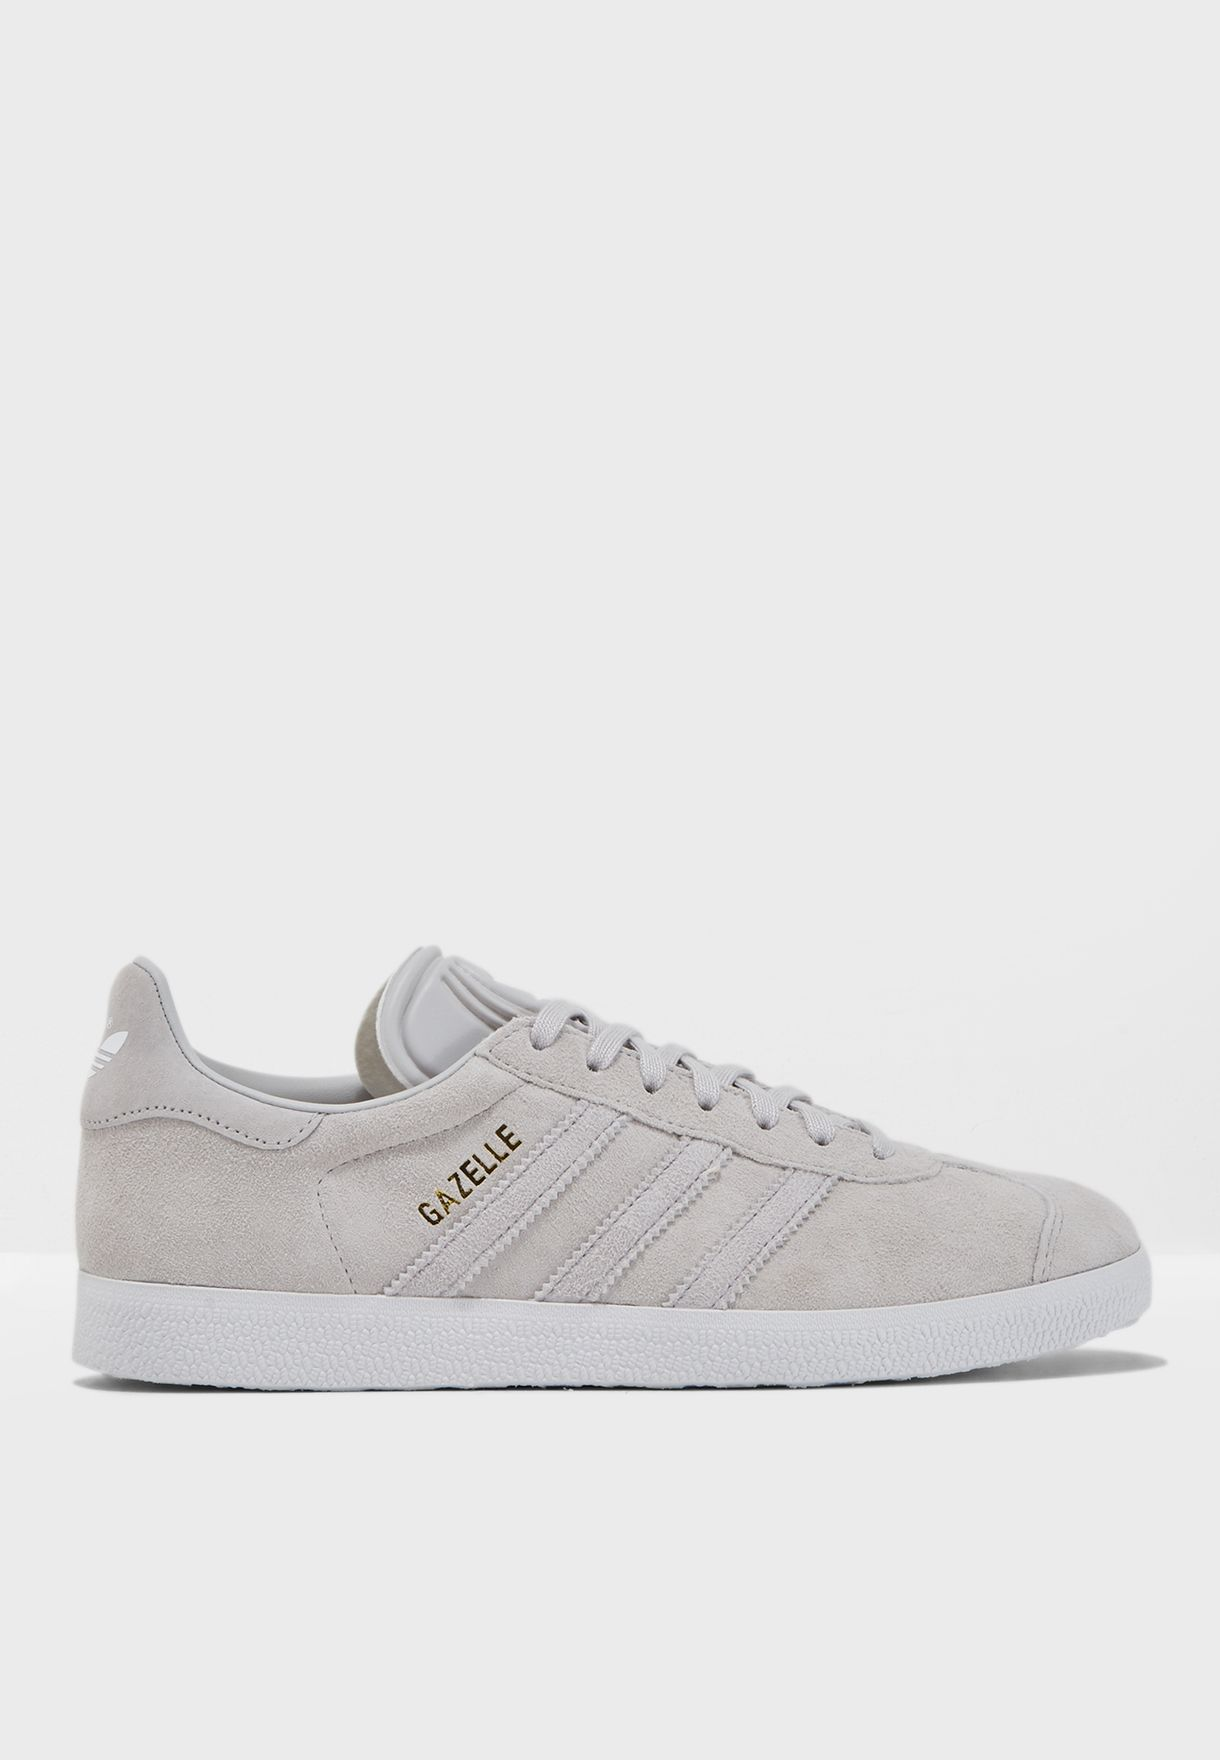 adidas Gazelle Women Shoes Beige CQ2188